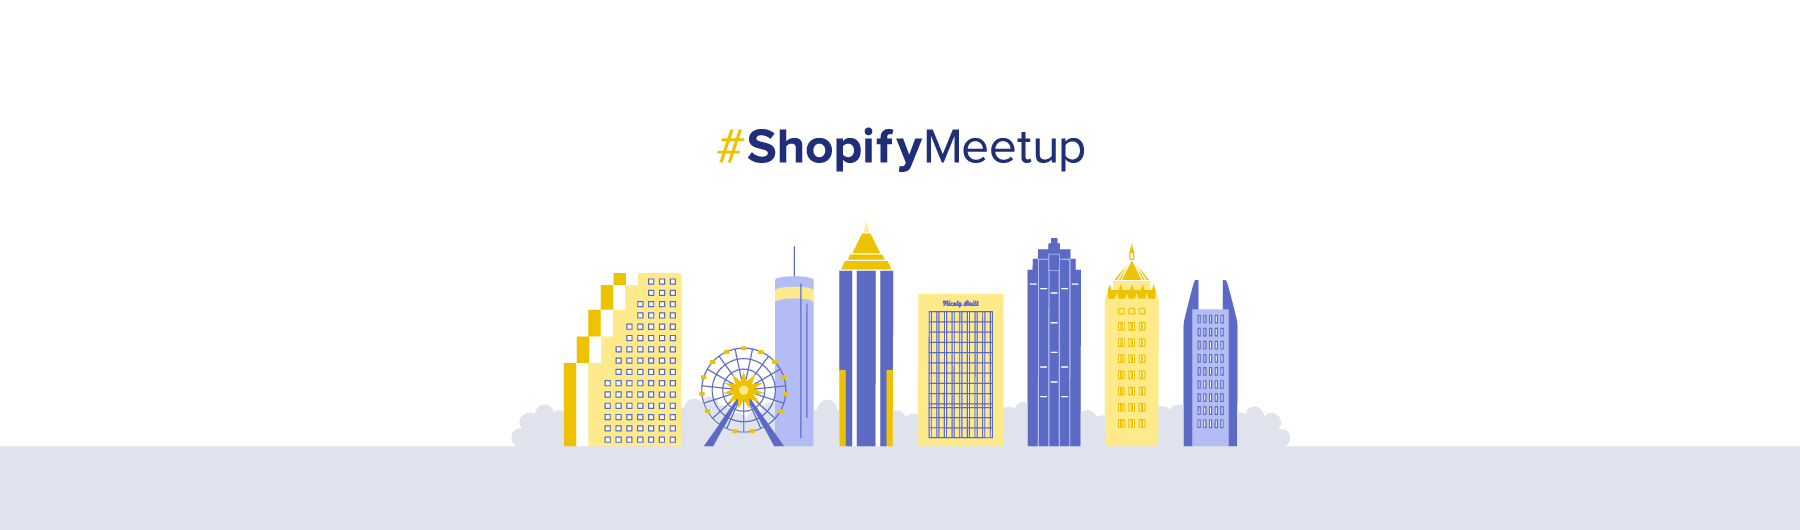 October 16th Shopify Meetup